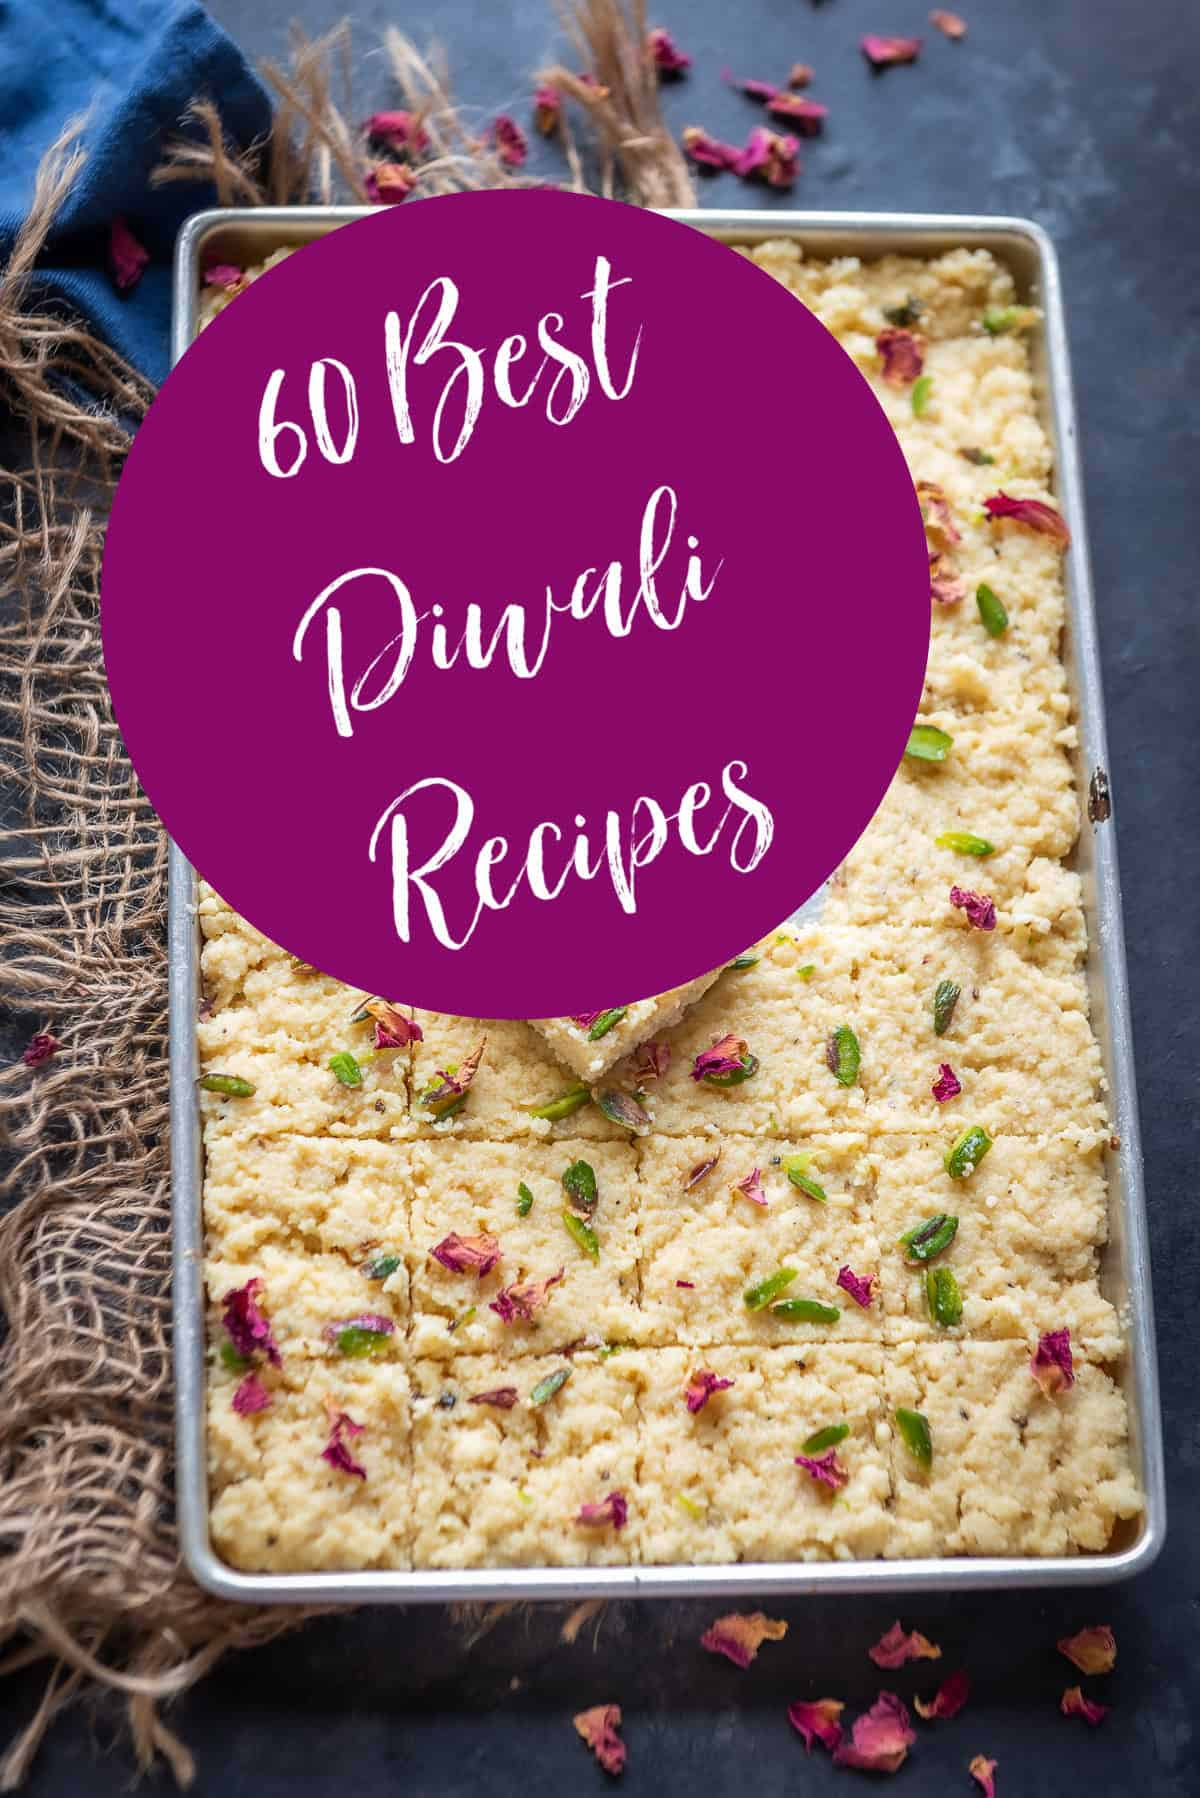 A sweet with message of best Diwali recipes